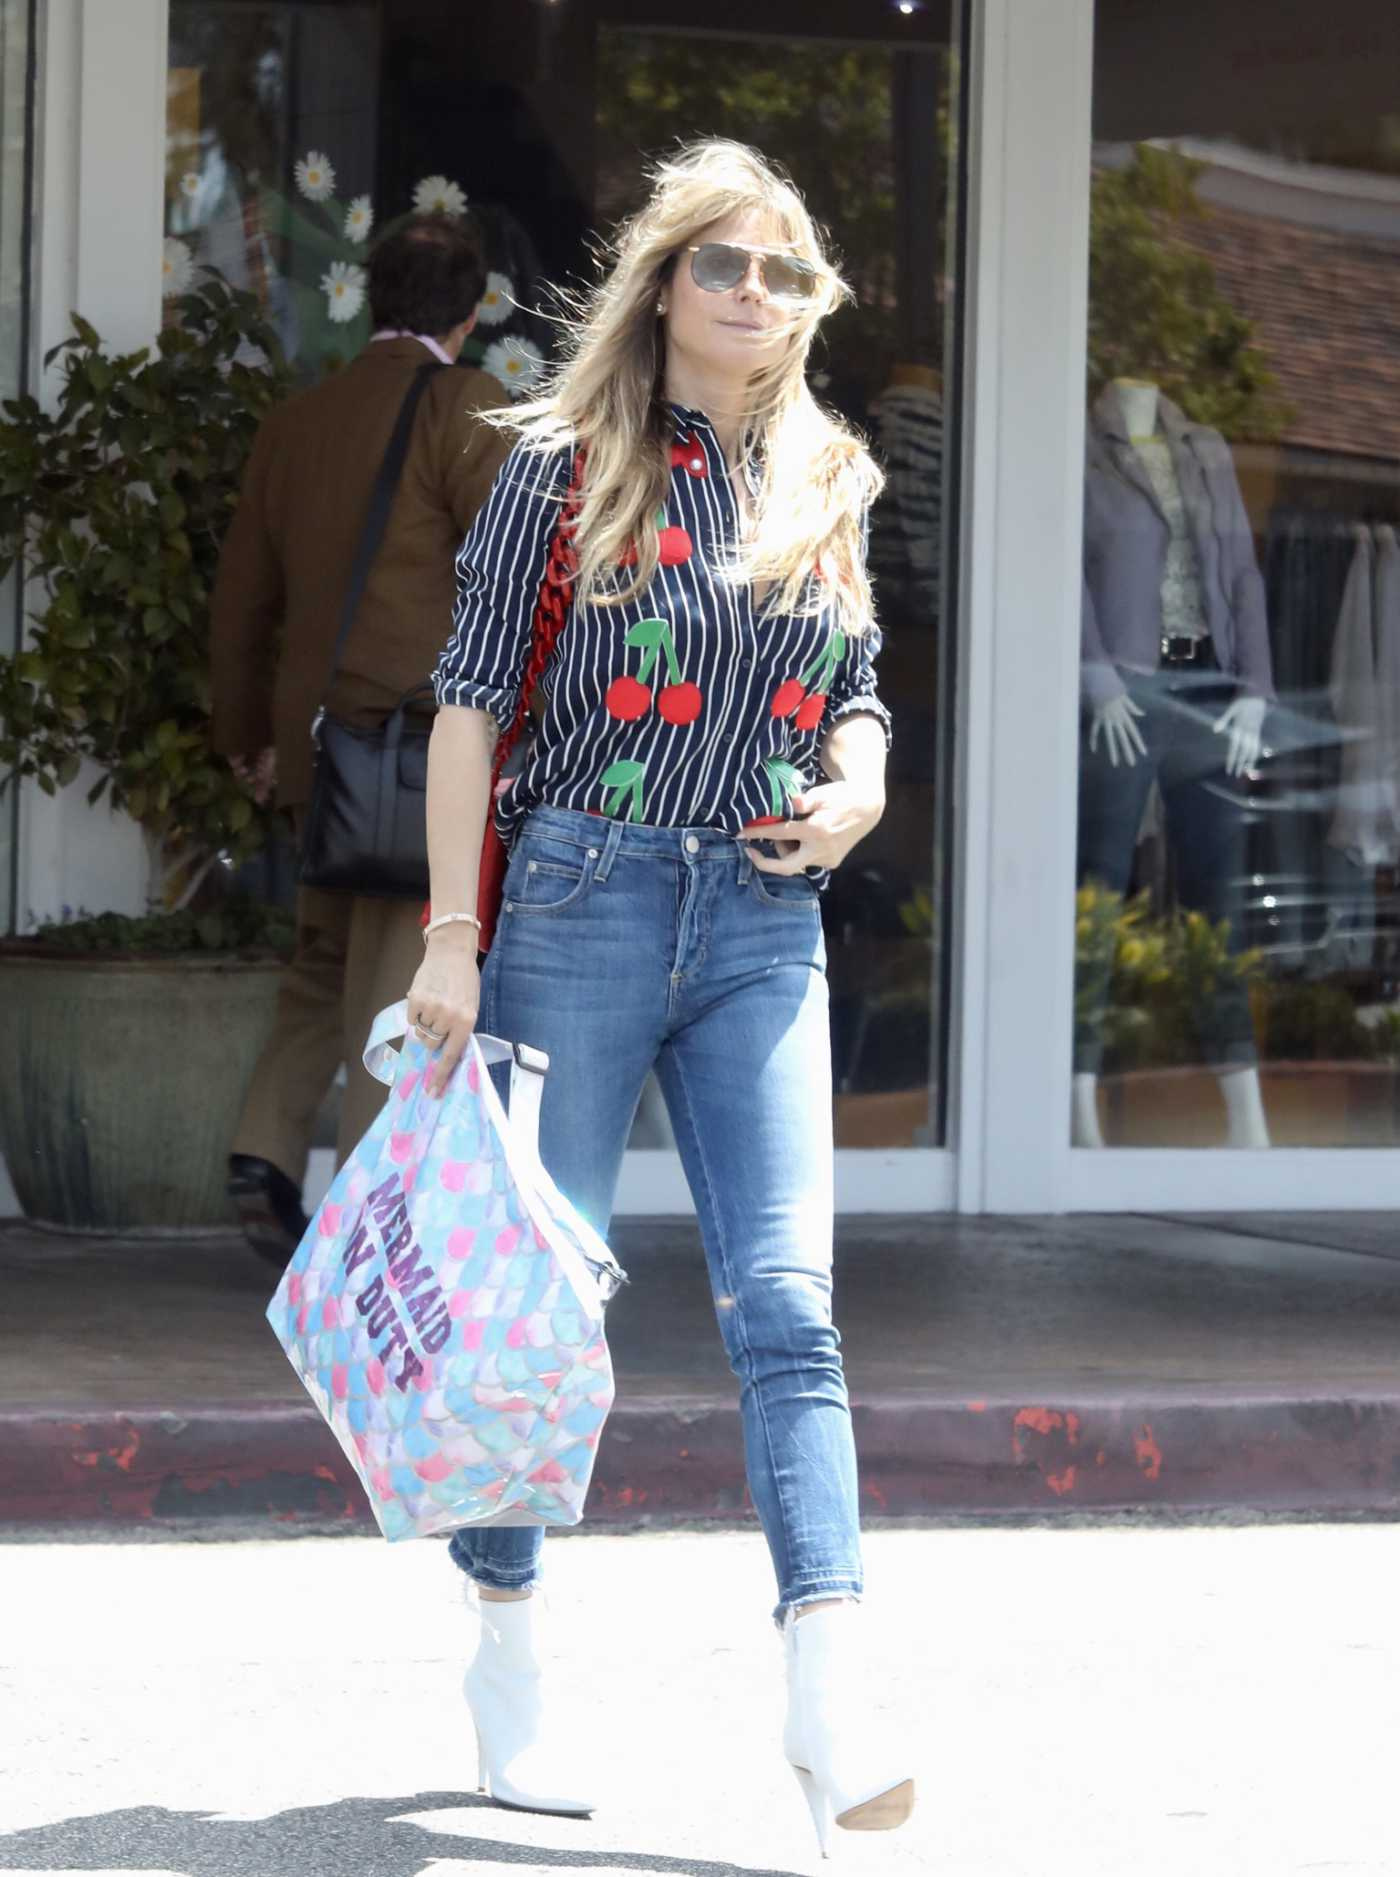 Heidi Klum in a Blue Striped Blouse Out Shopping in Beverly Hills 05/01/2019